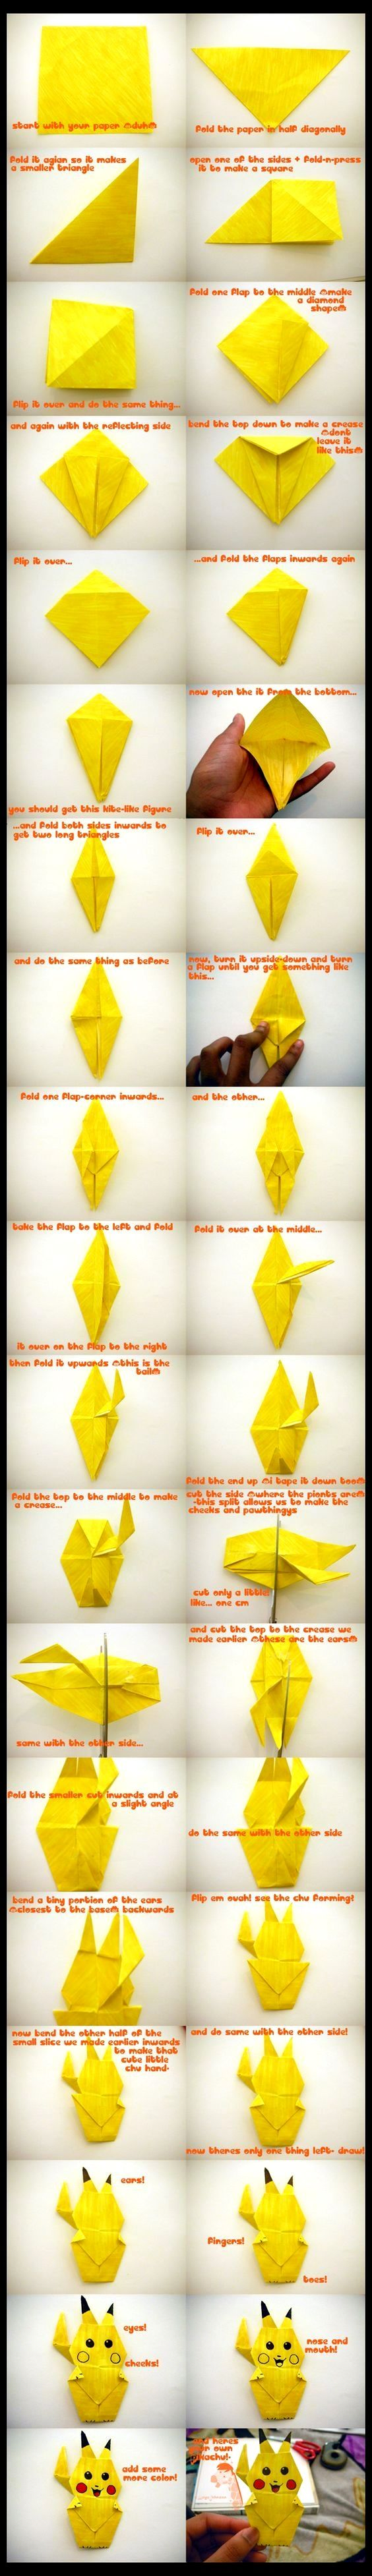 Photo of How To Make An Origami Pikachu Pokemon Craft Origami Oragami Pokemon